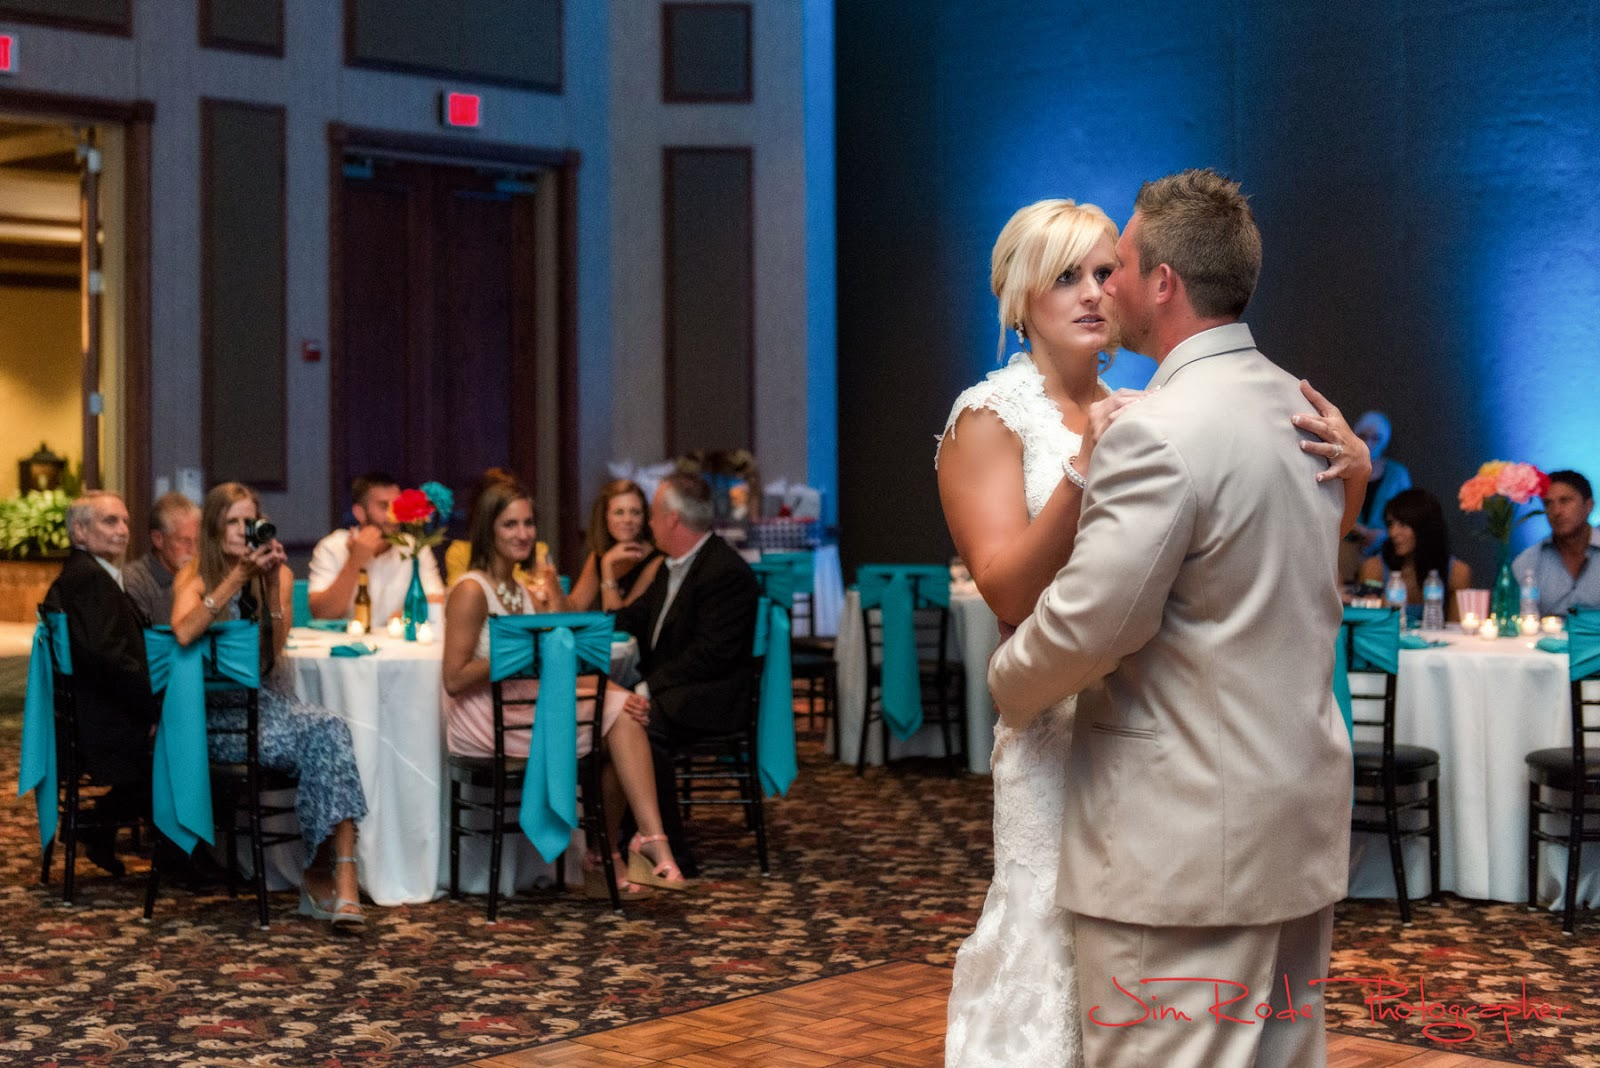 the first dance in the ballroom at the Grand Prairie wedding.